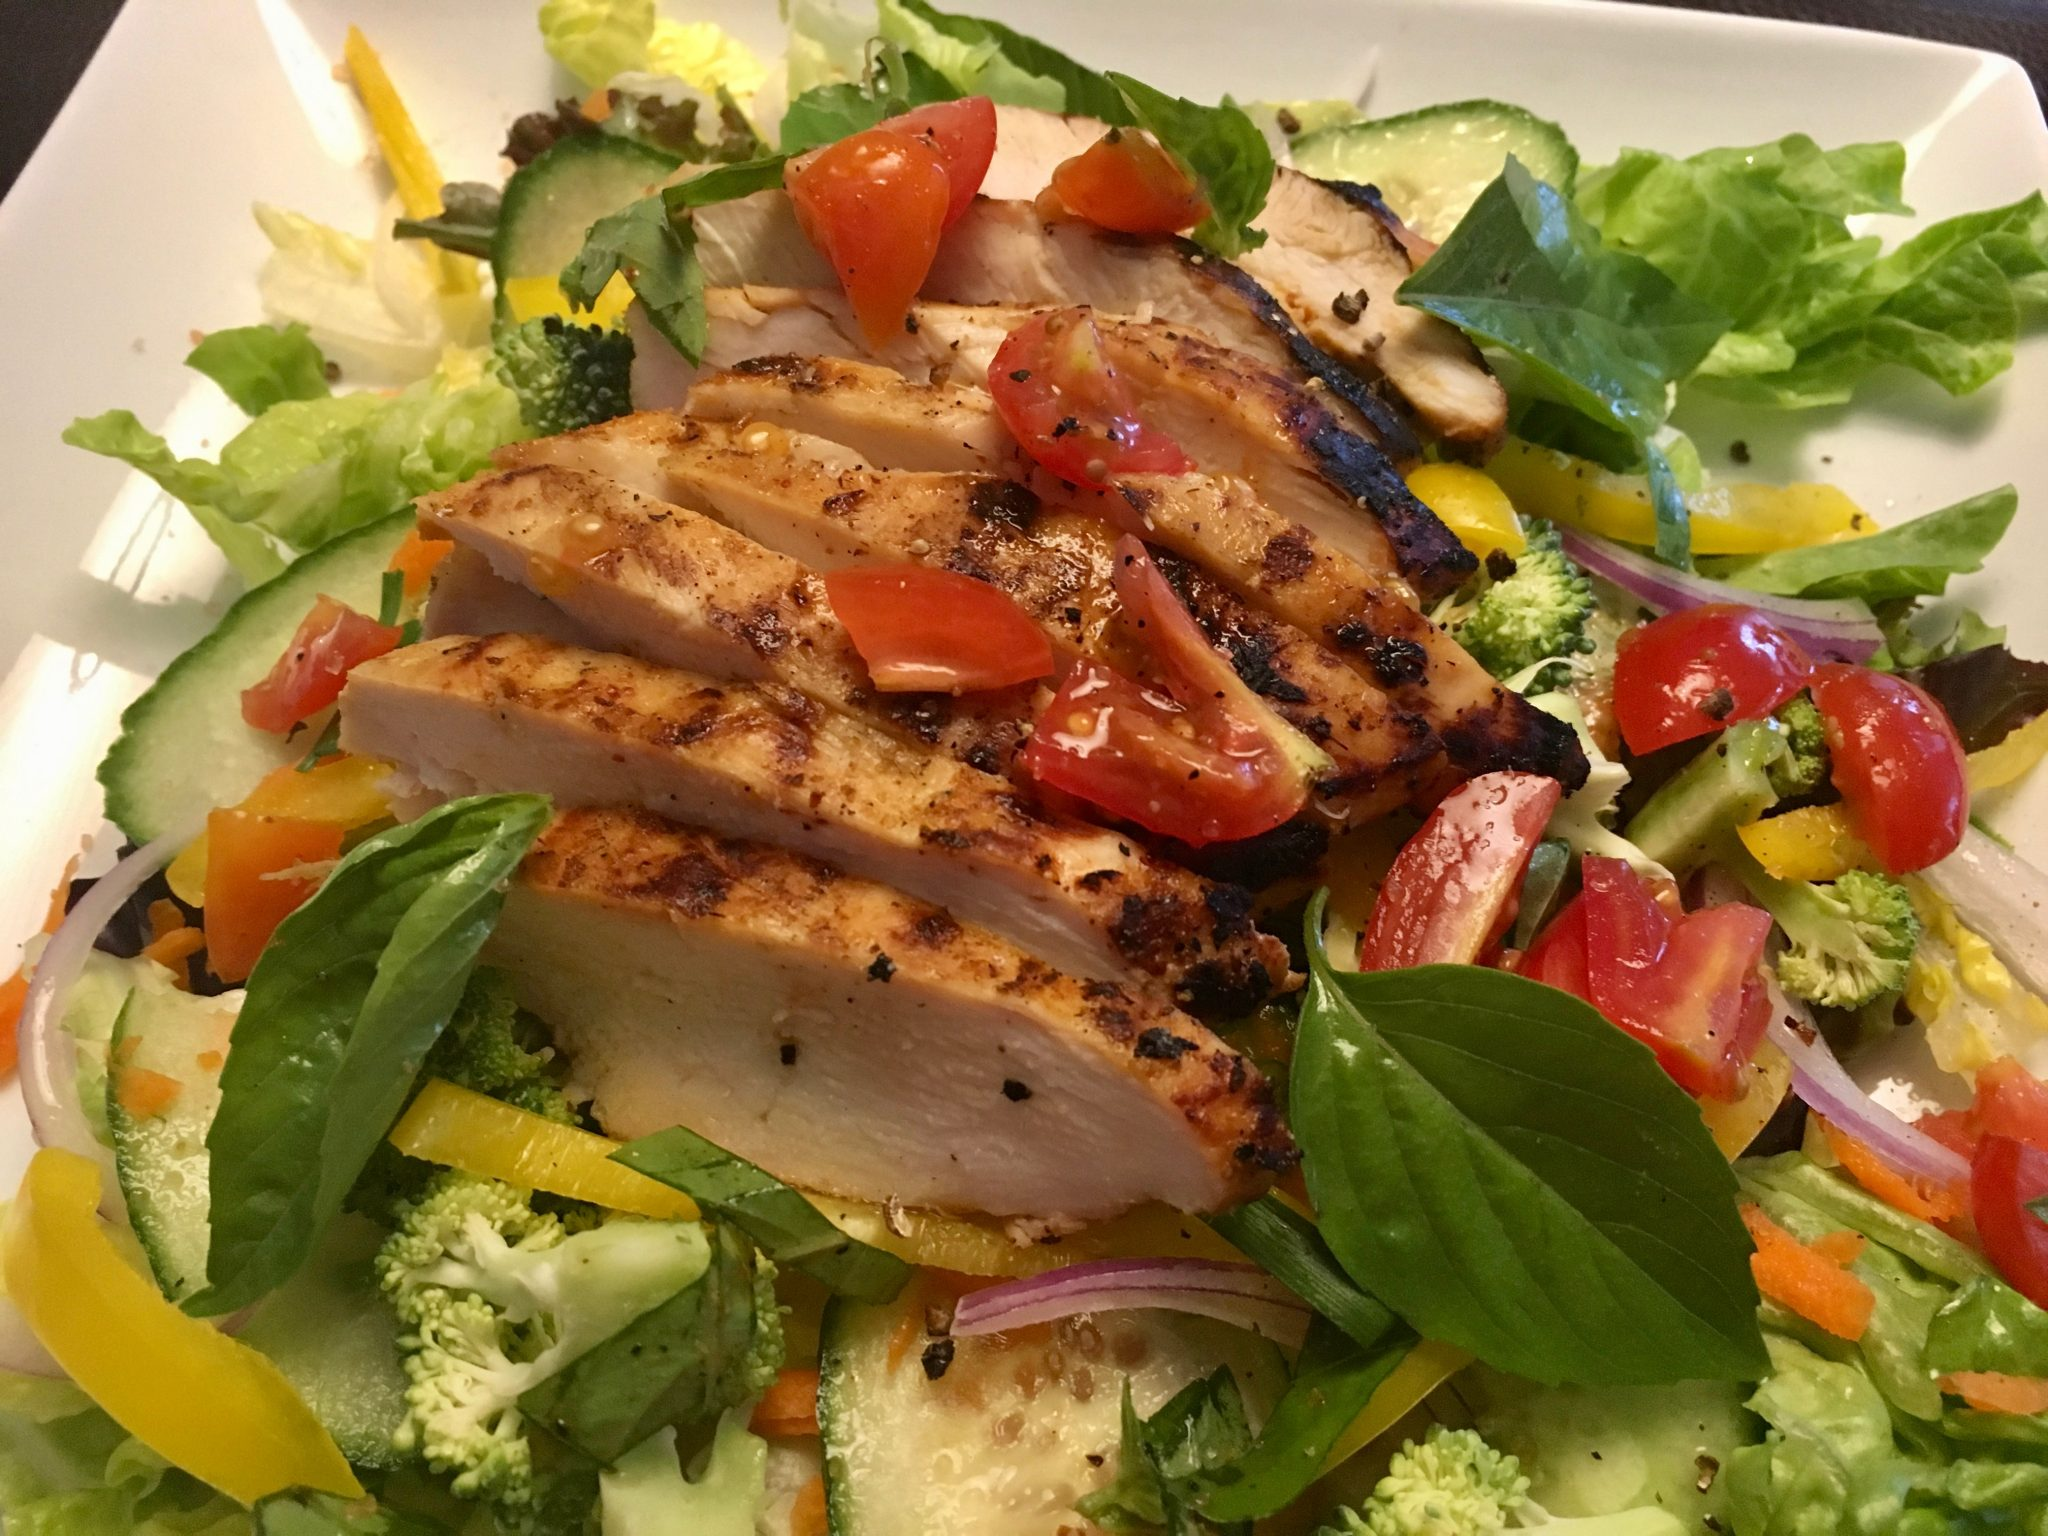 Thai red curry grilled chicken salad